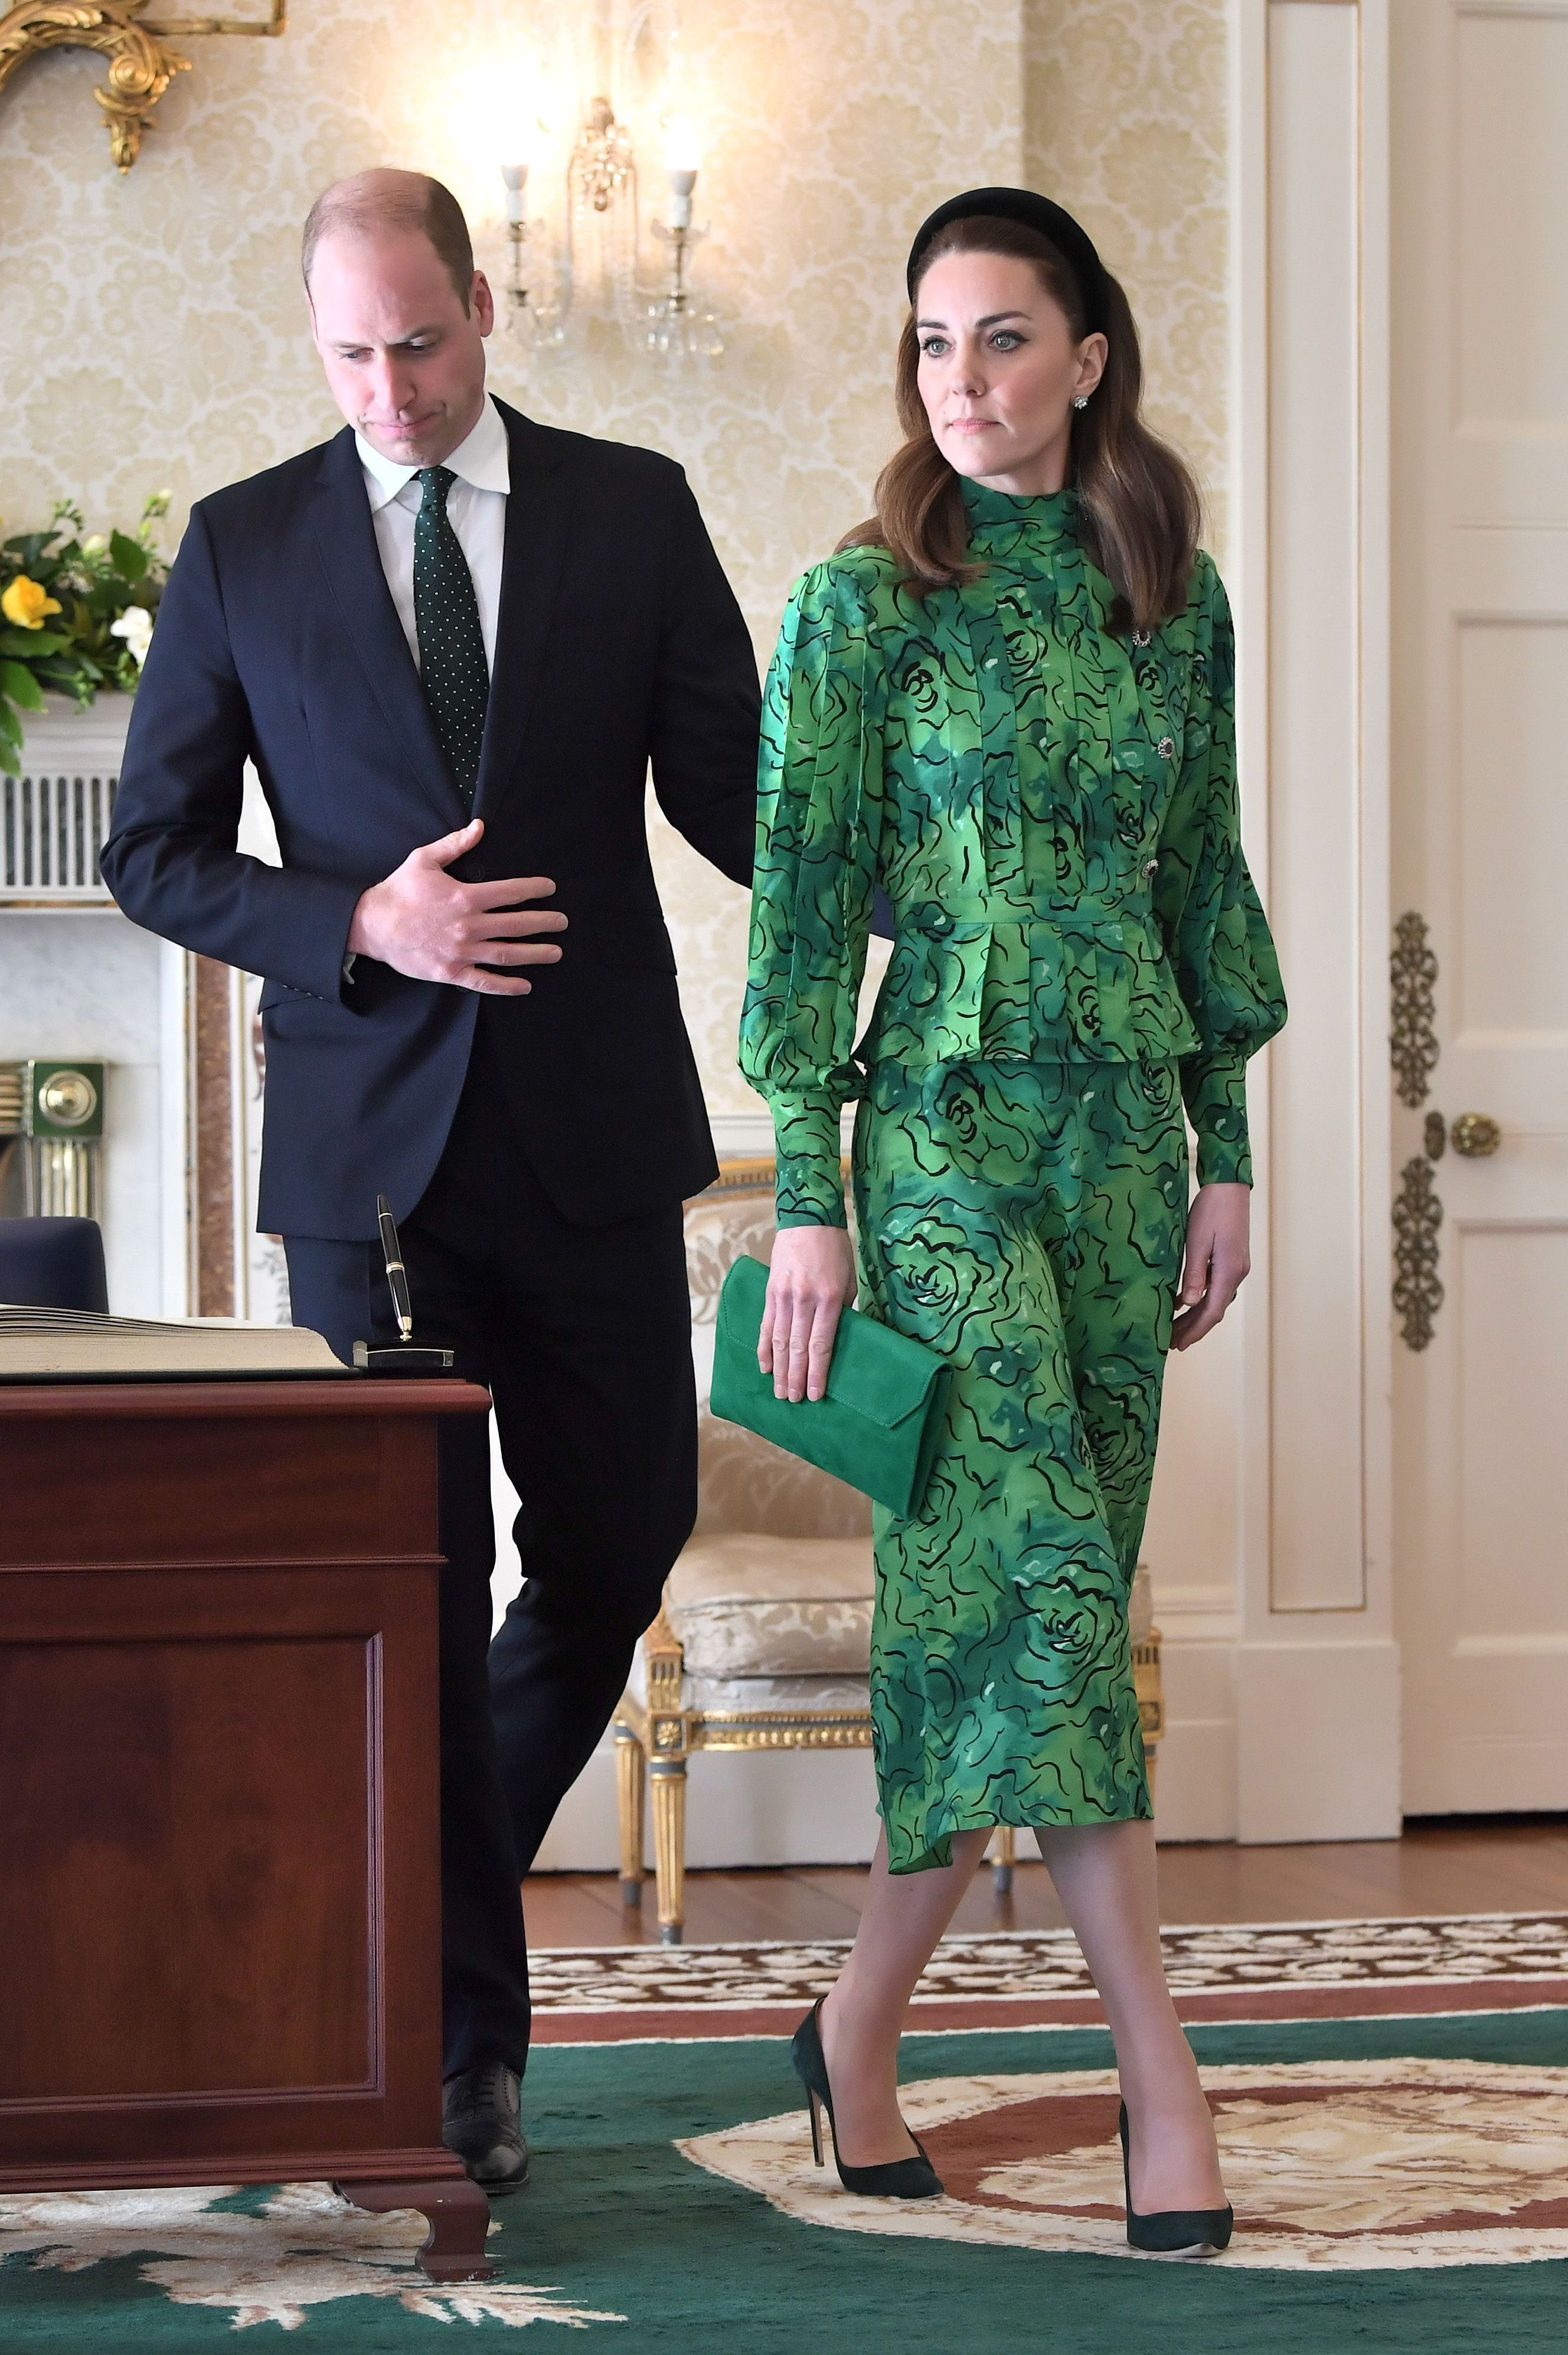 Kate Middleton Wore Two Bold Green Looks for Her First Day In Ireland